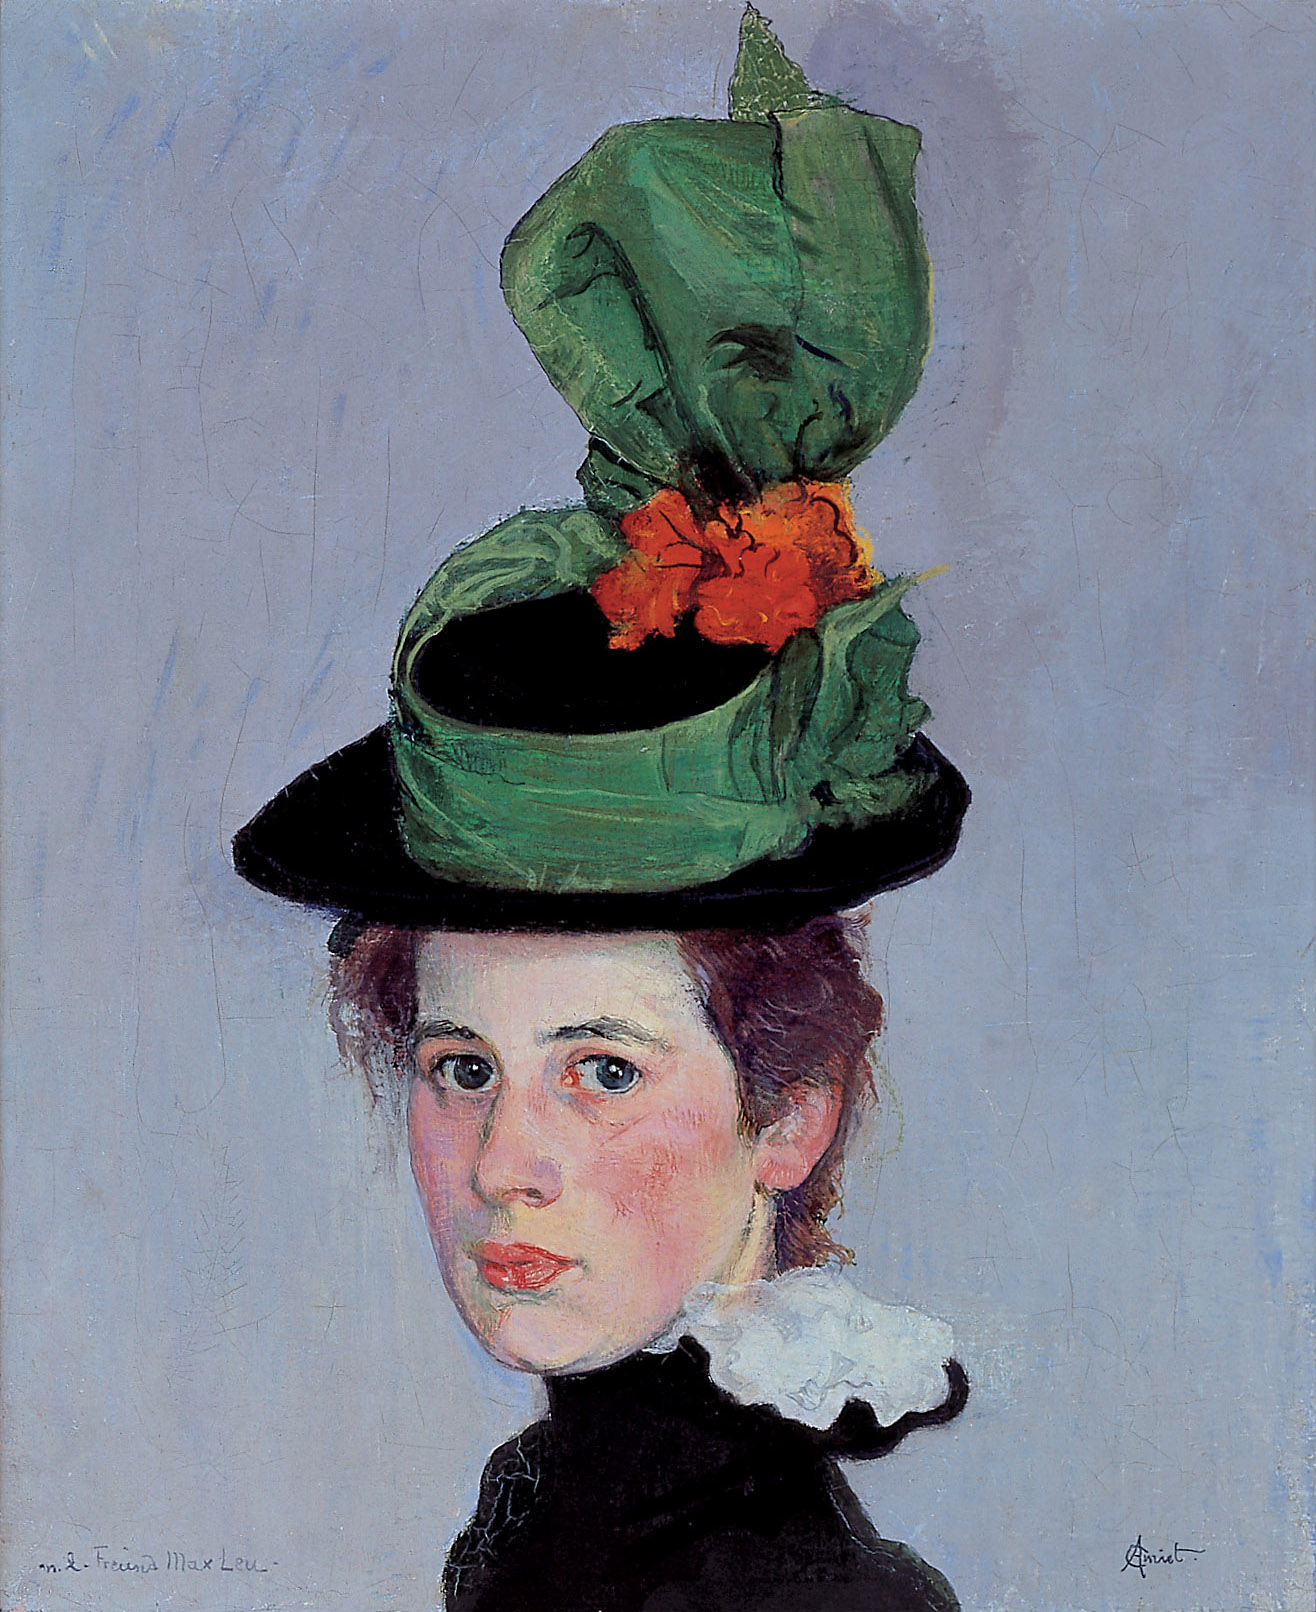 Cuno Amiet, The Green Hat, 1897/98 - exhibited in Venice, 1934